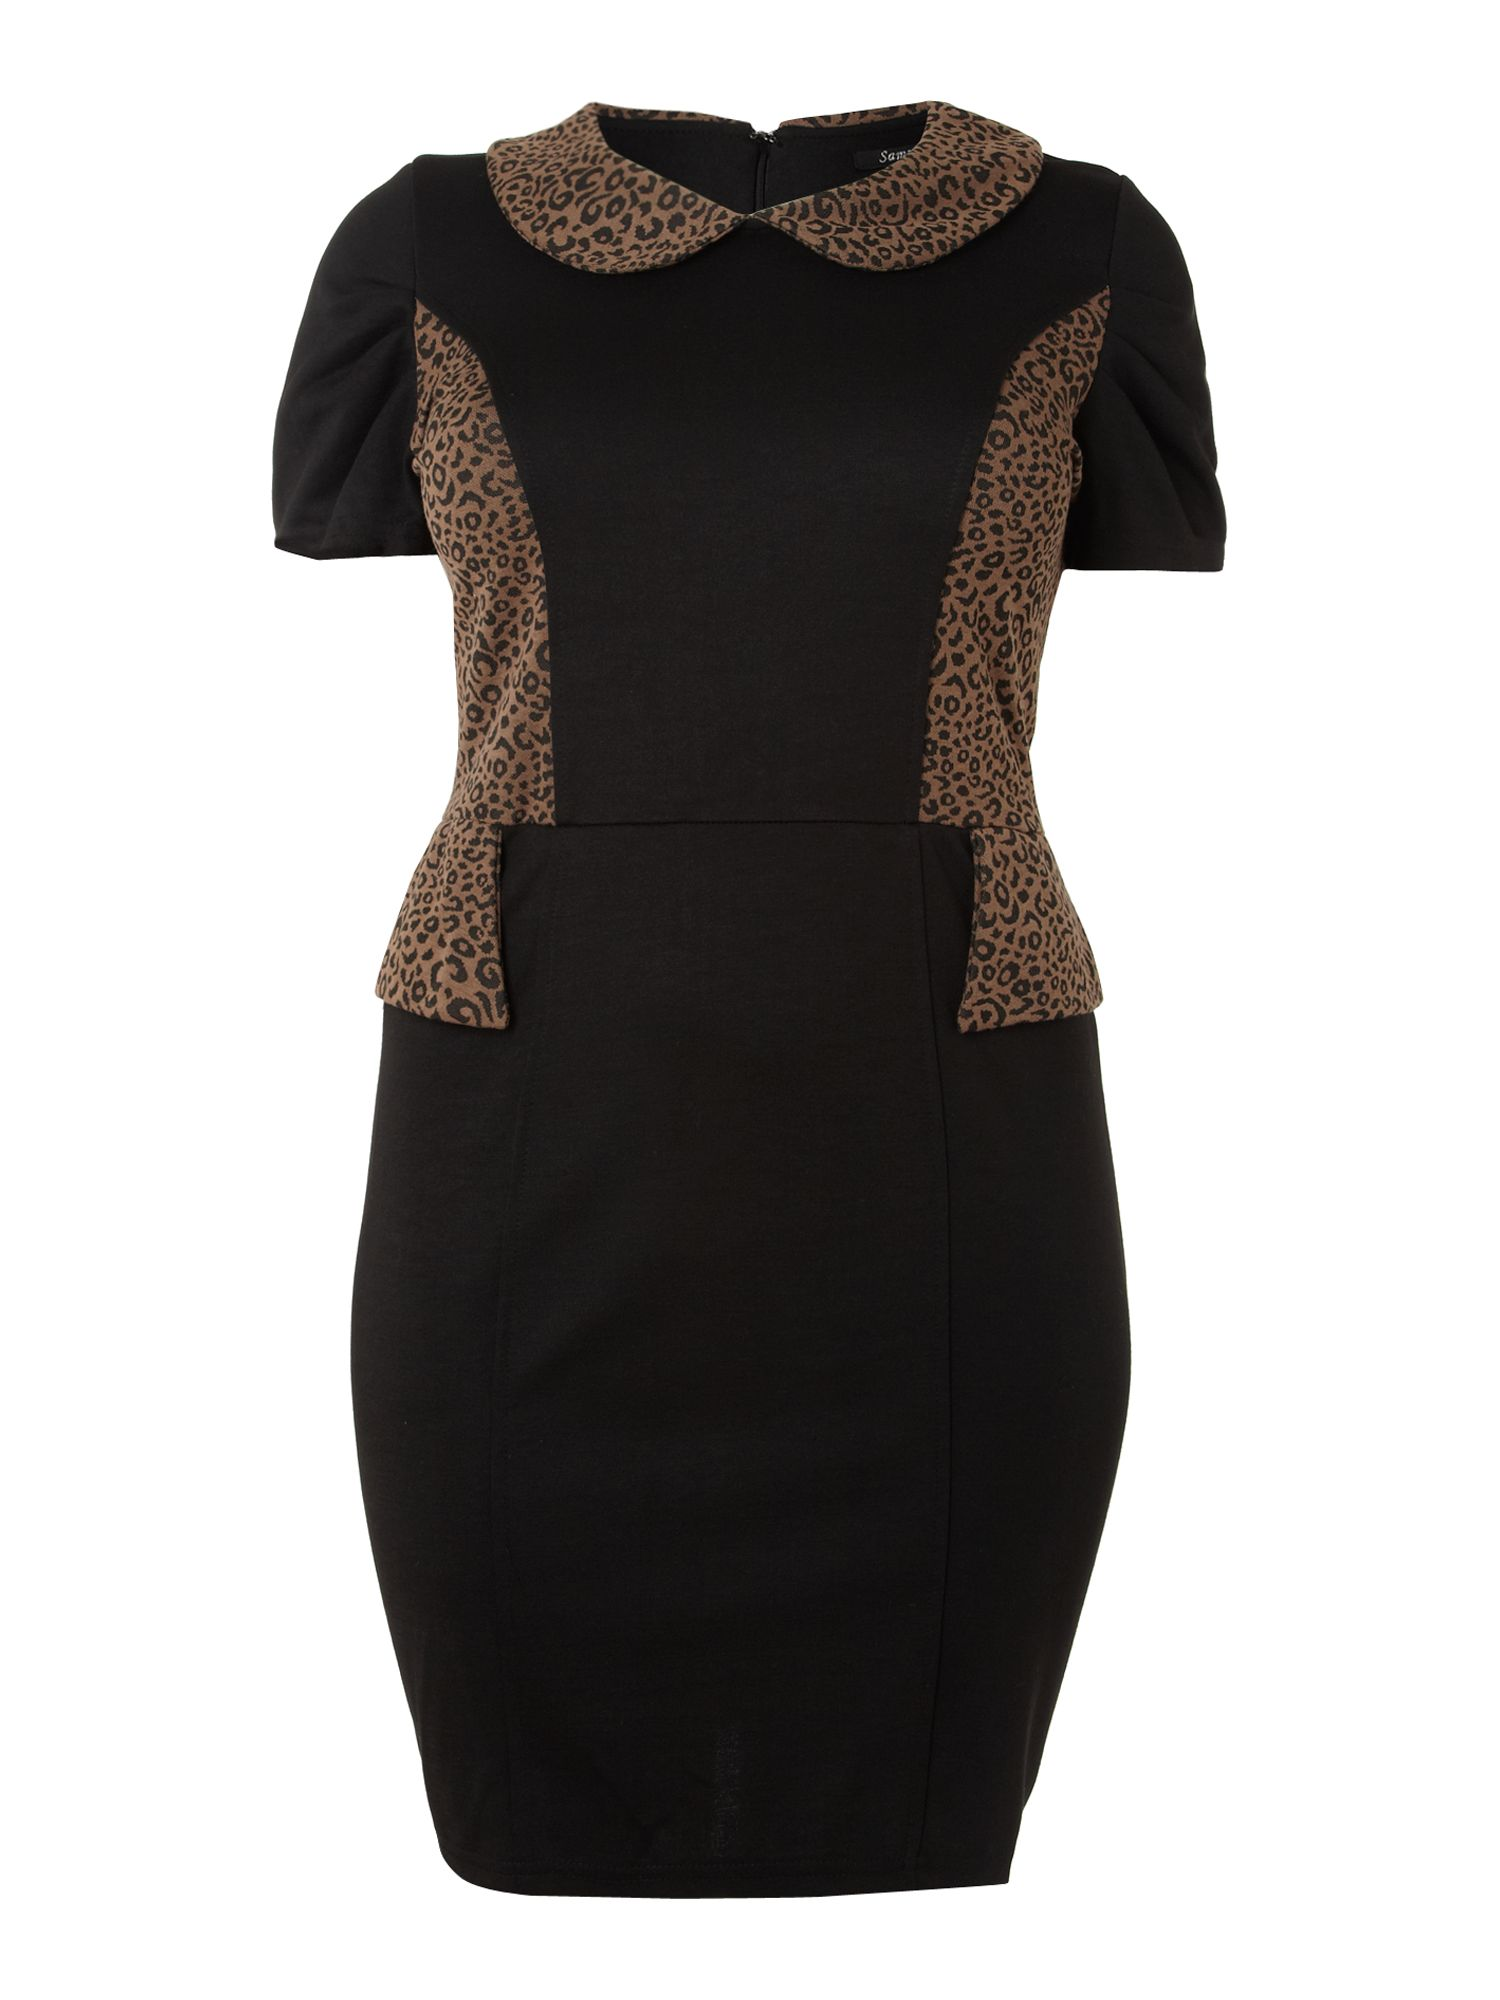 Peplum contrast dress